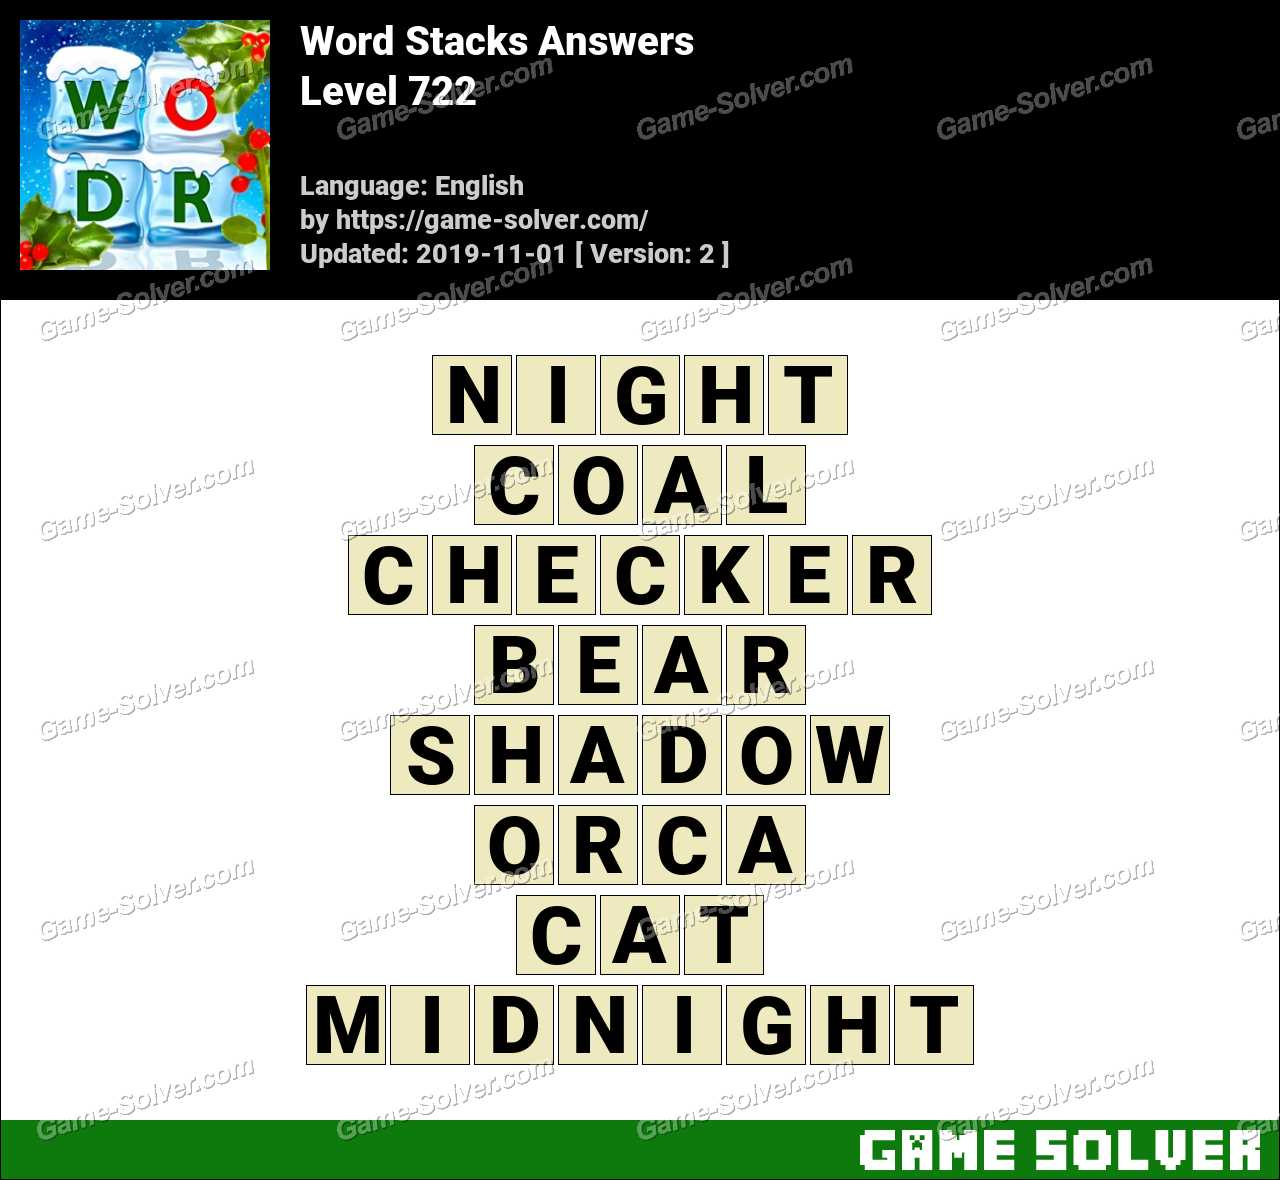 Word Stacks Level 722 Answers